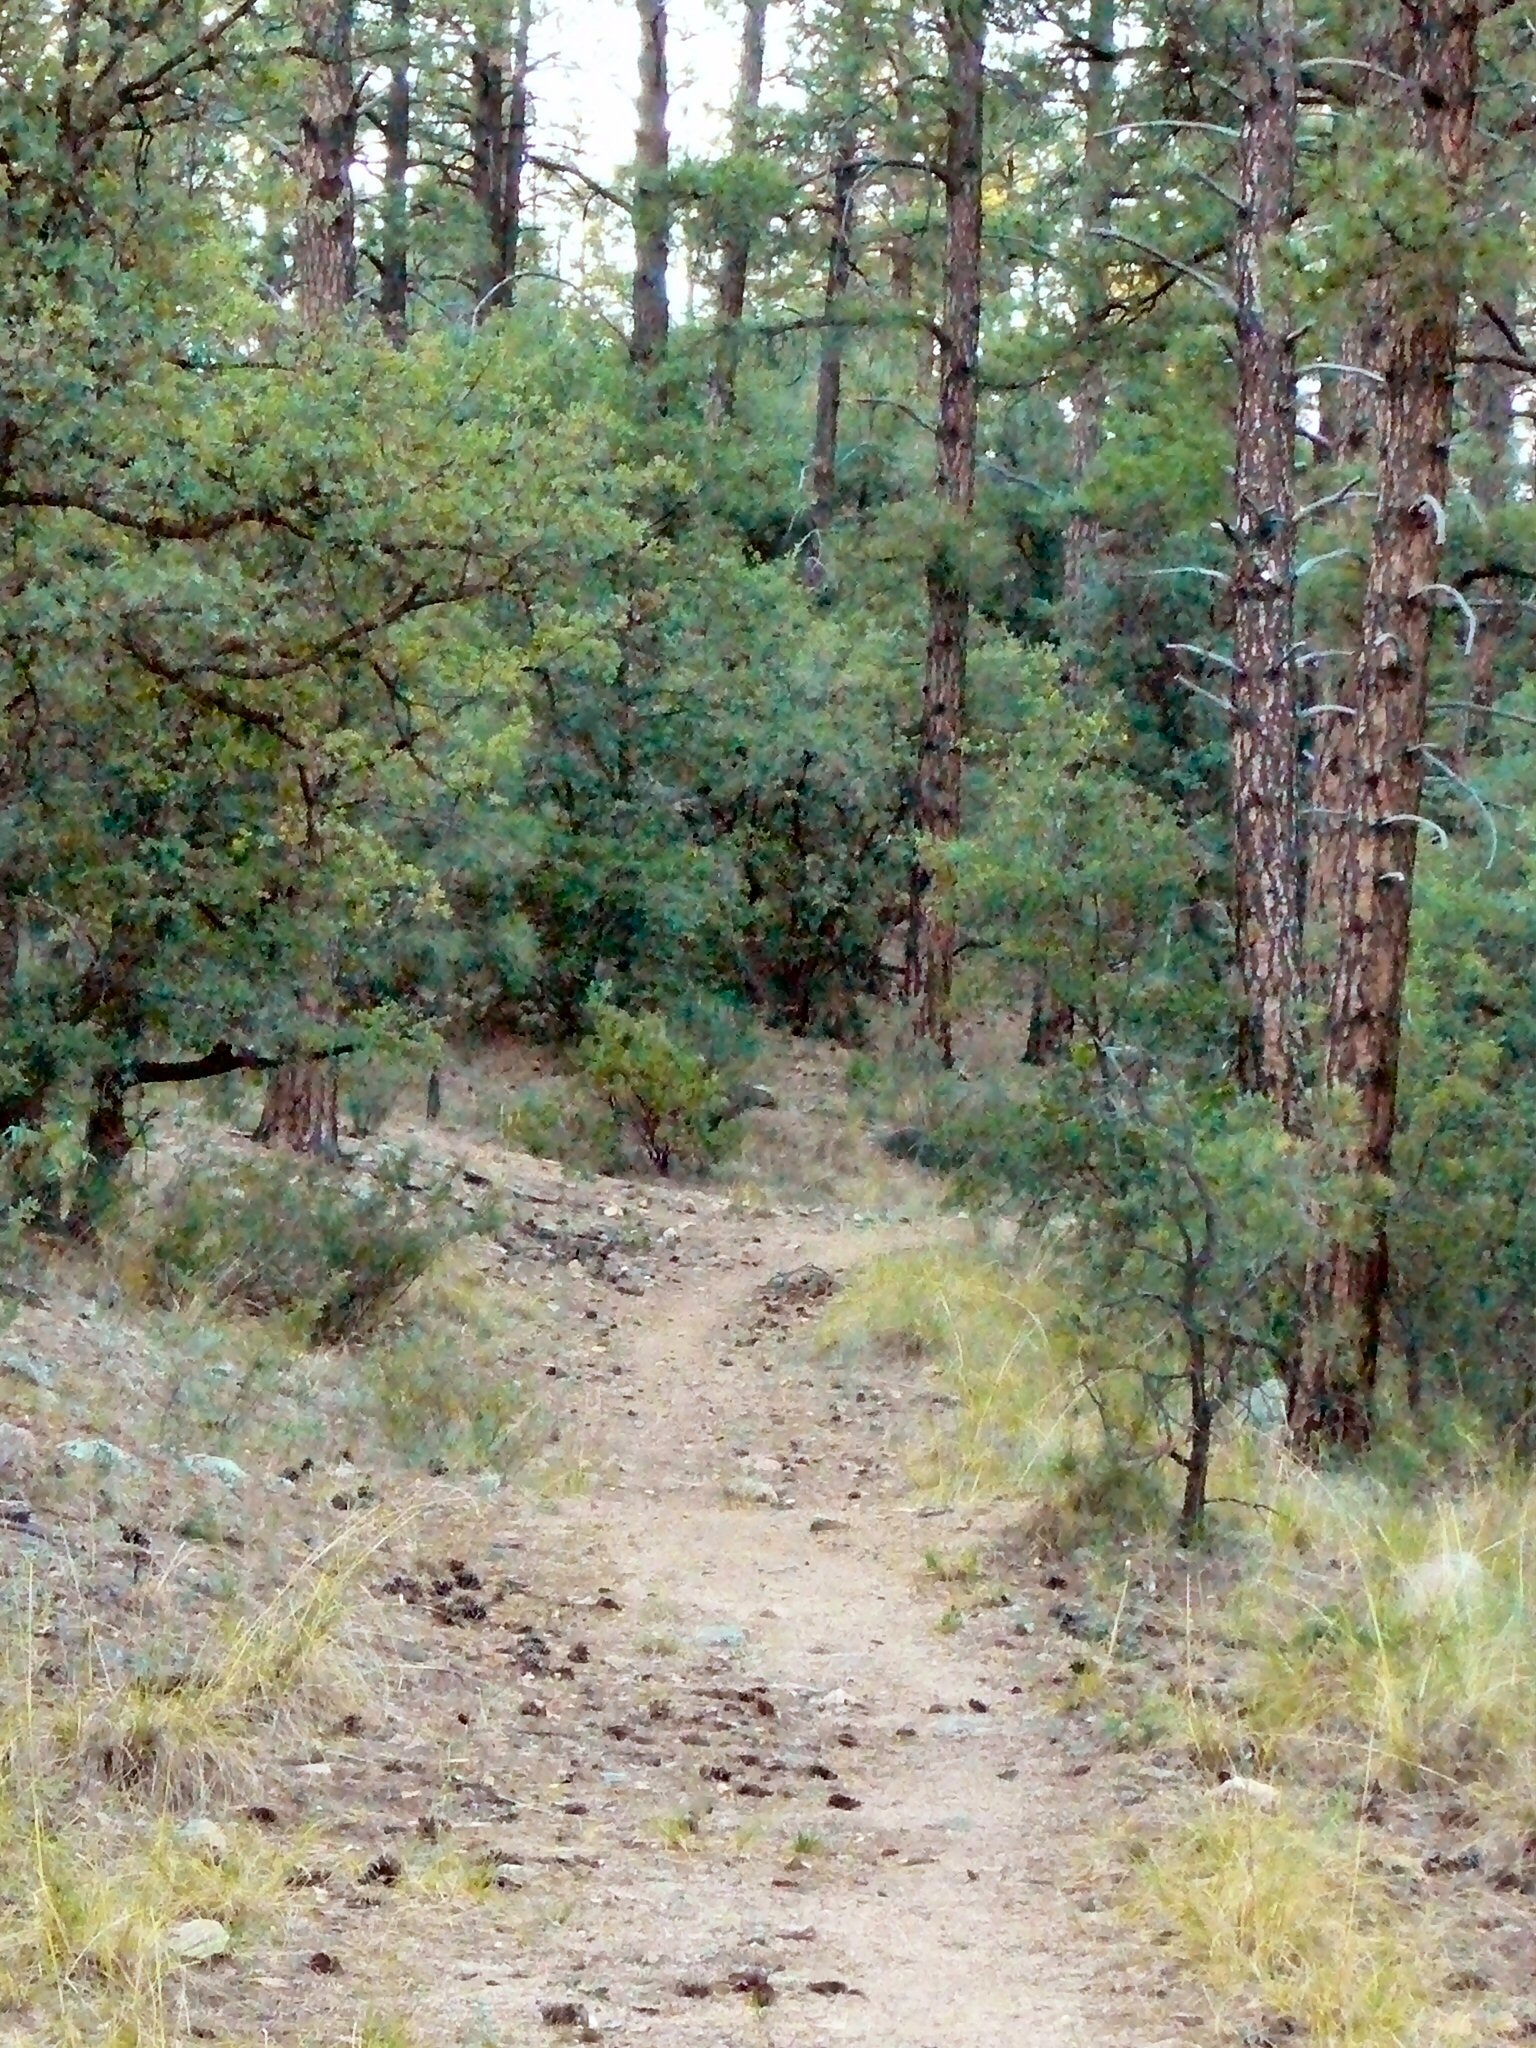 One section of singletrack in The Pines